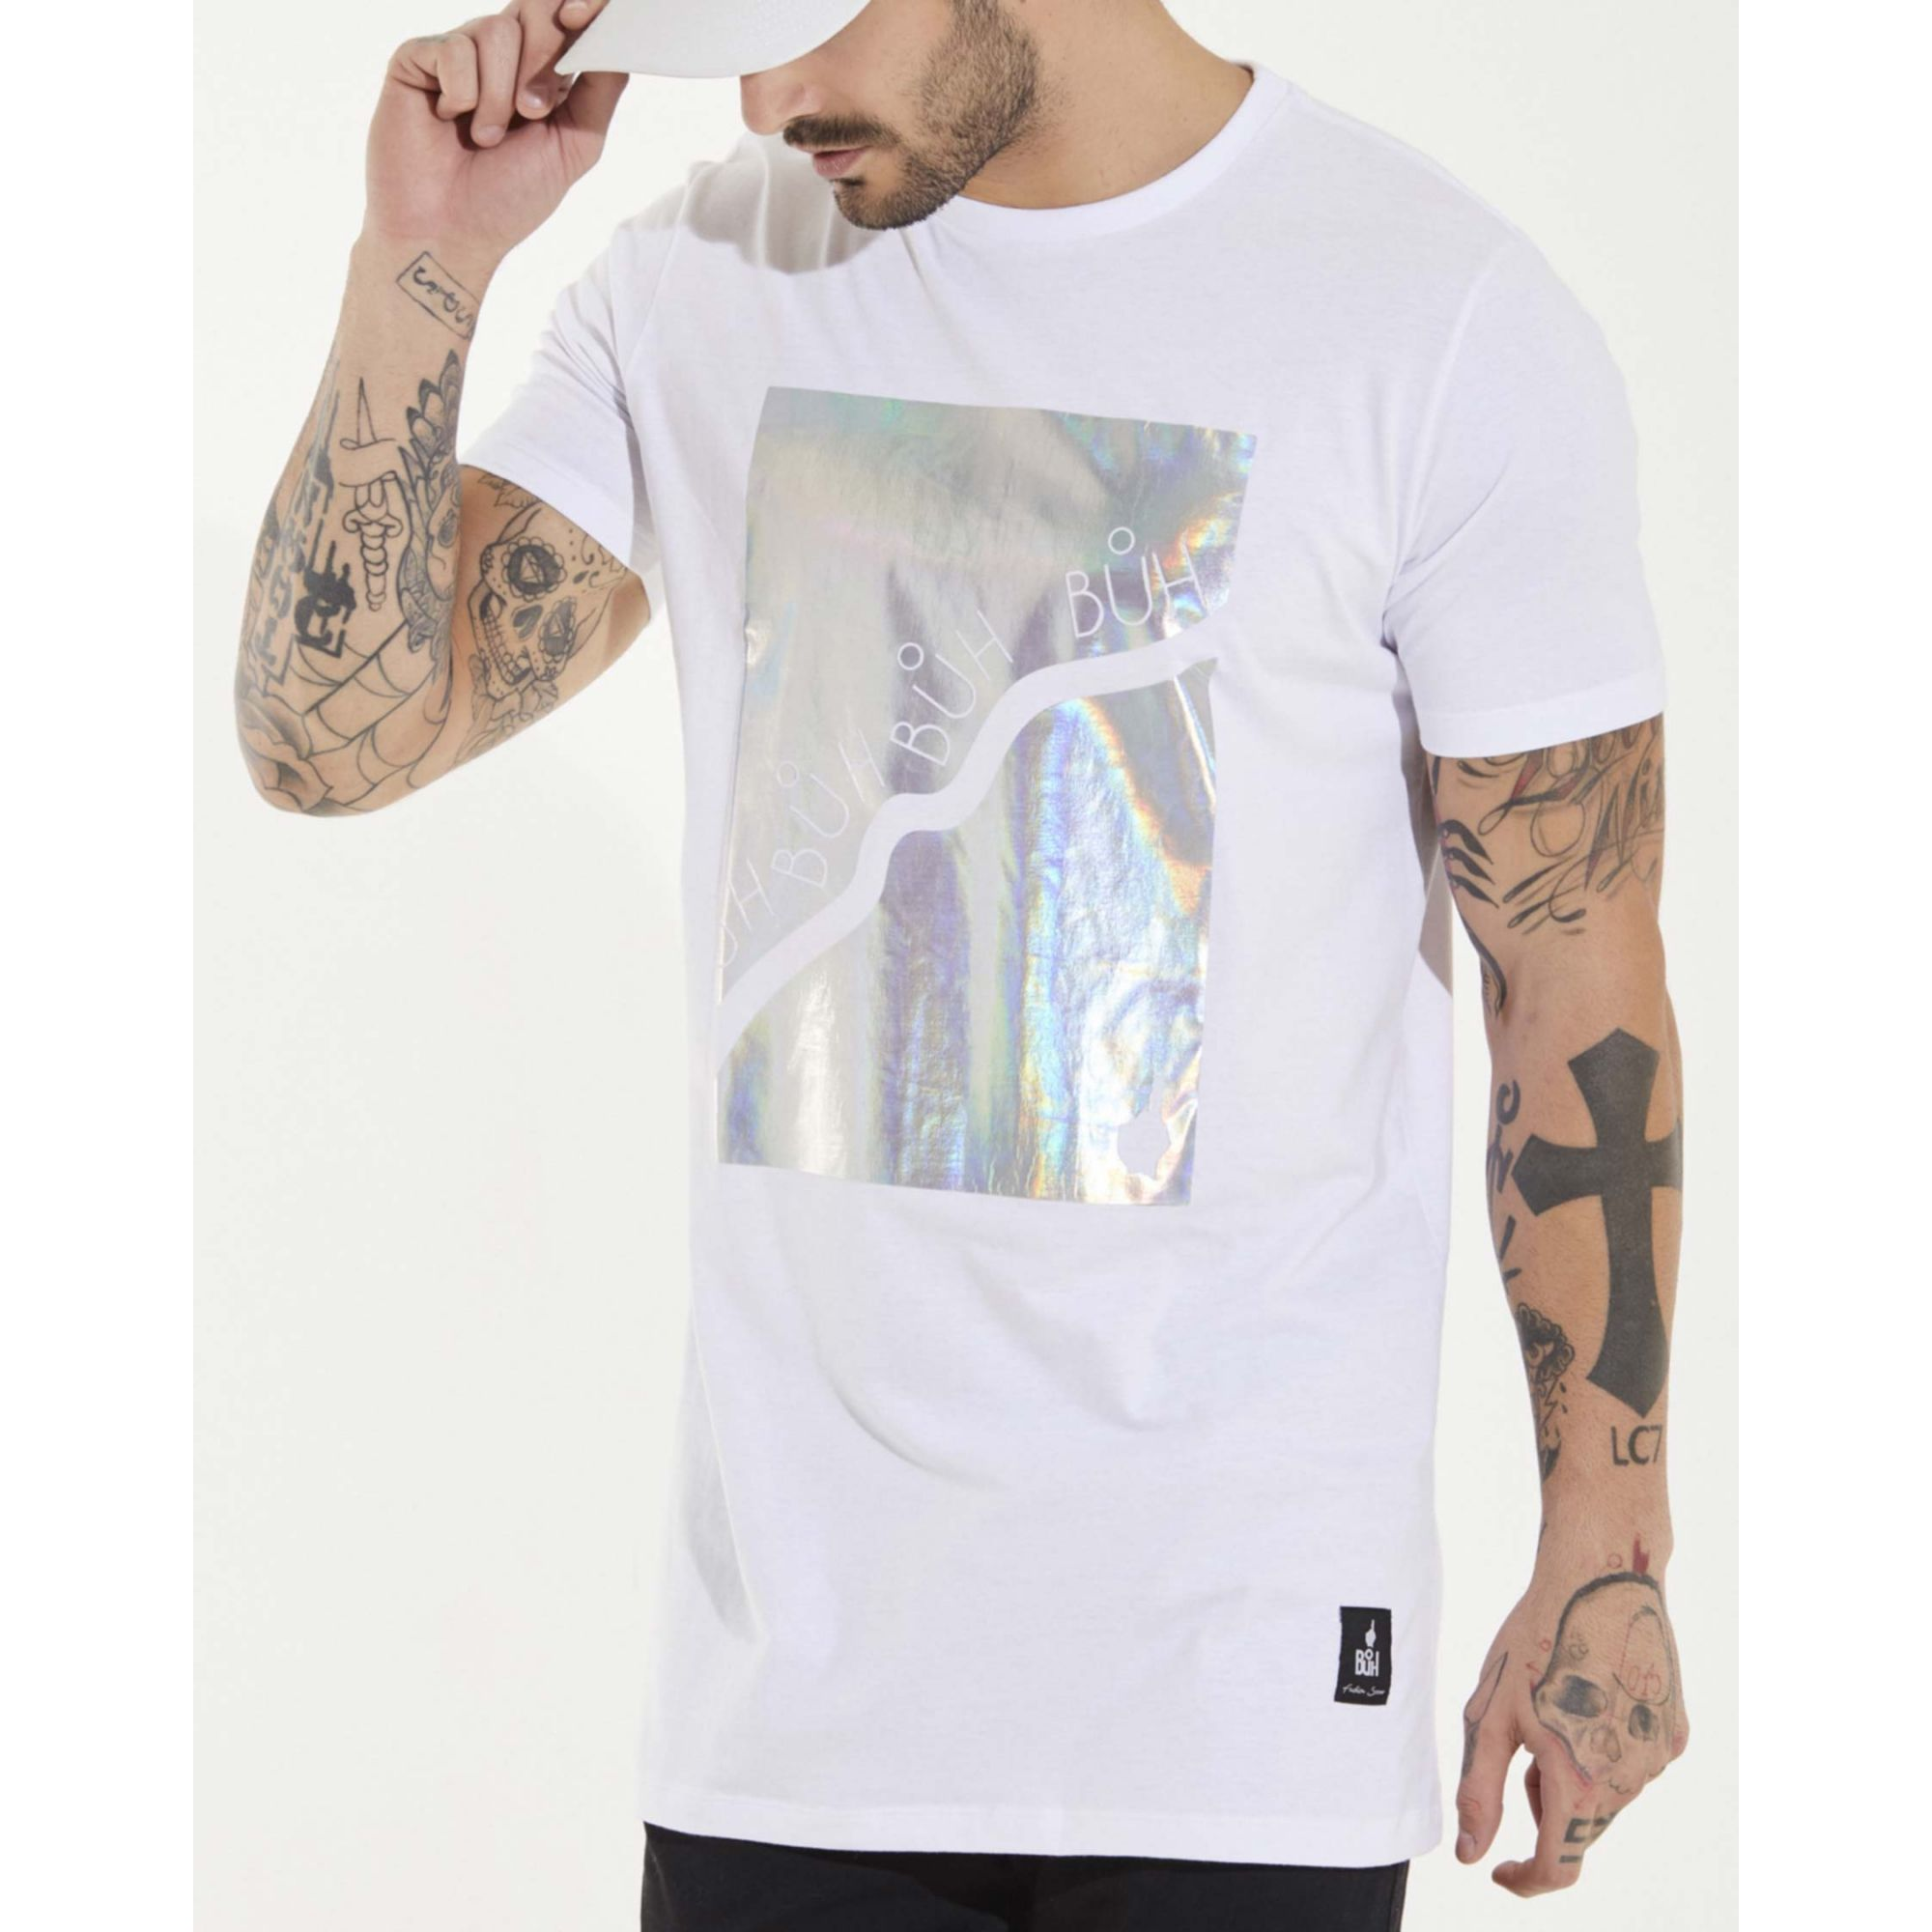 Camiseta Buh Furta Square White